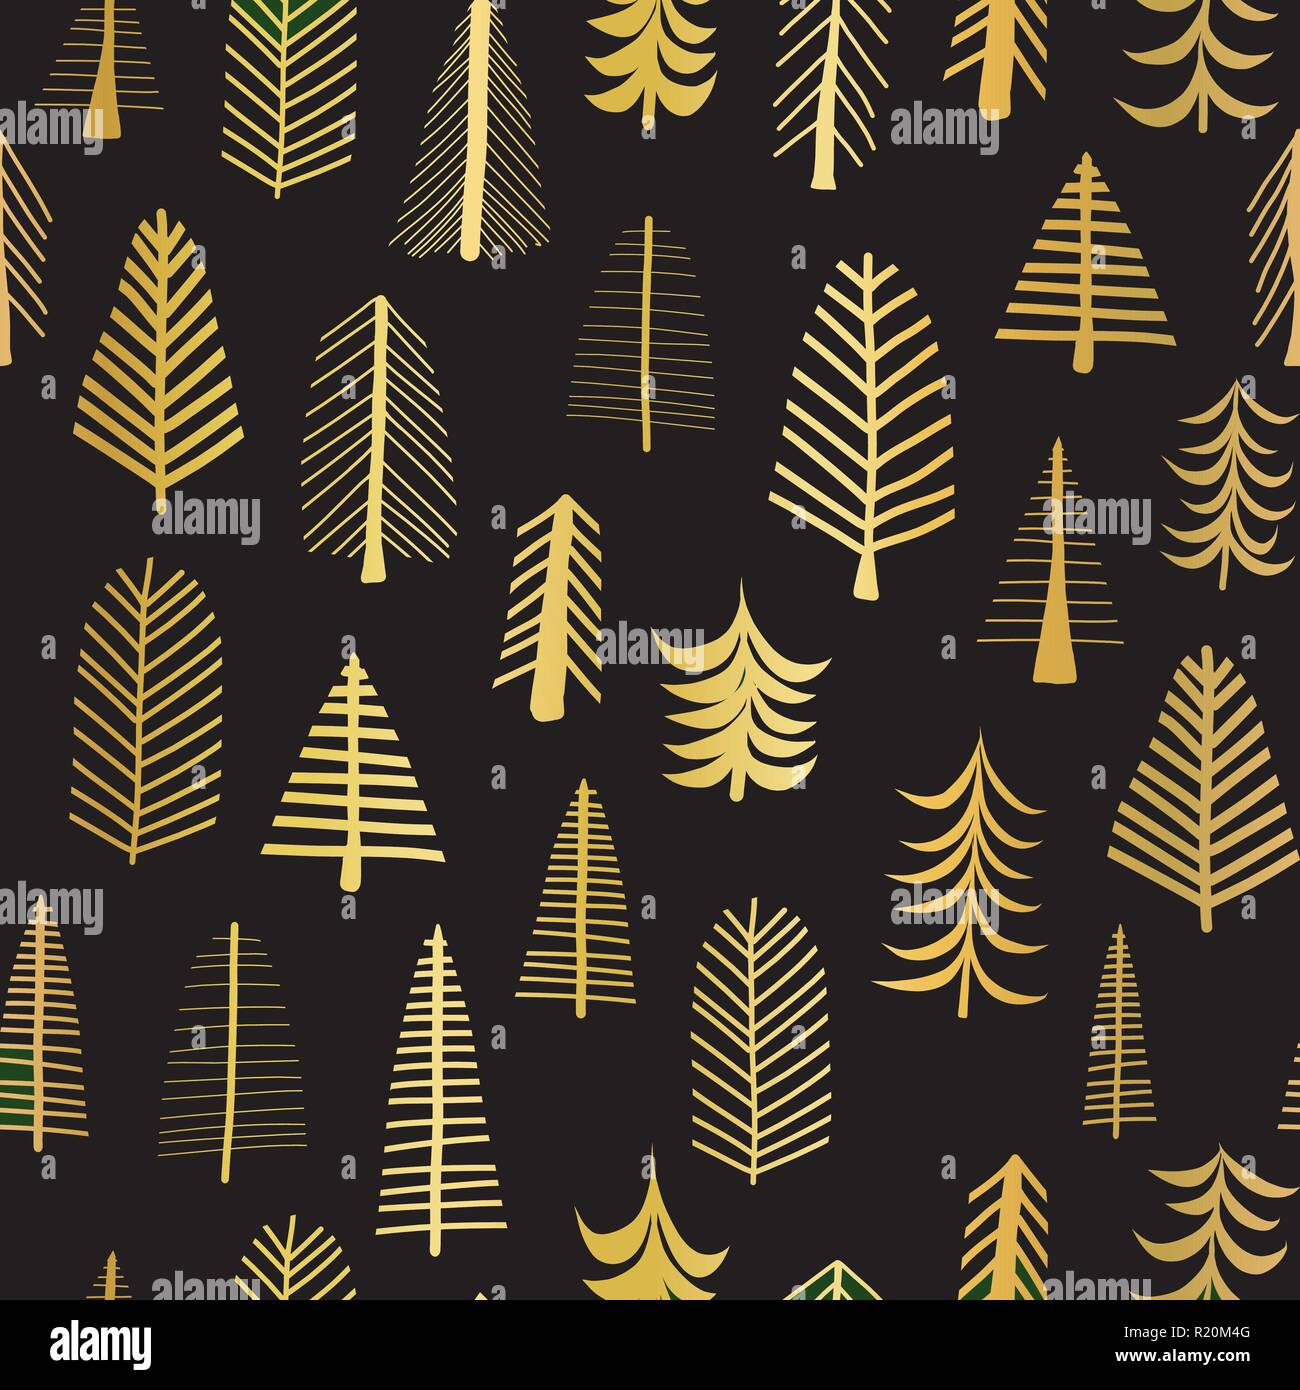 Gold Foil Doodle Christmas Trees Seamless Vector Pattern